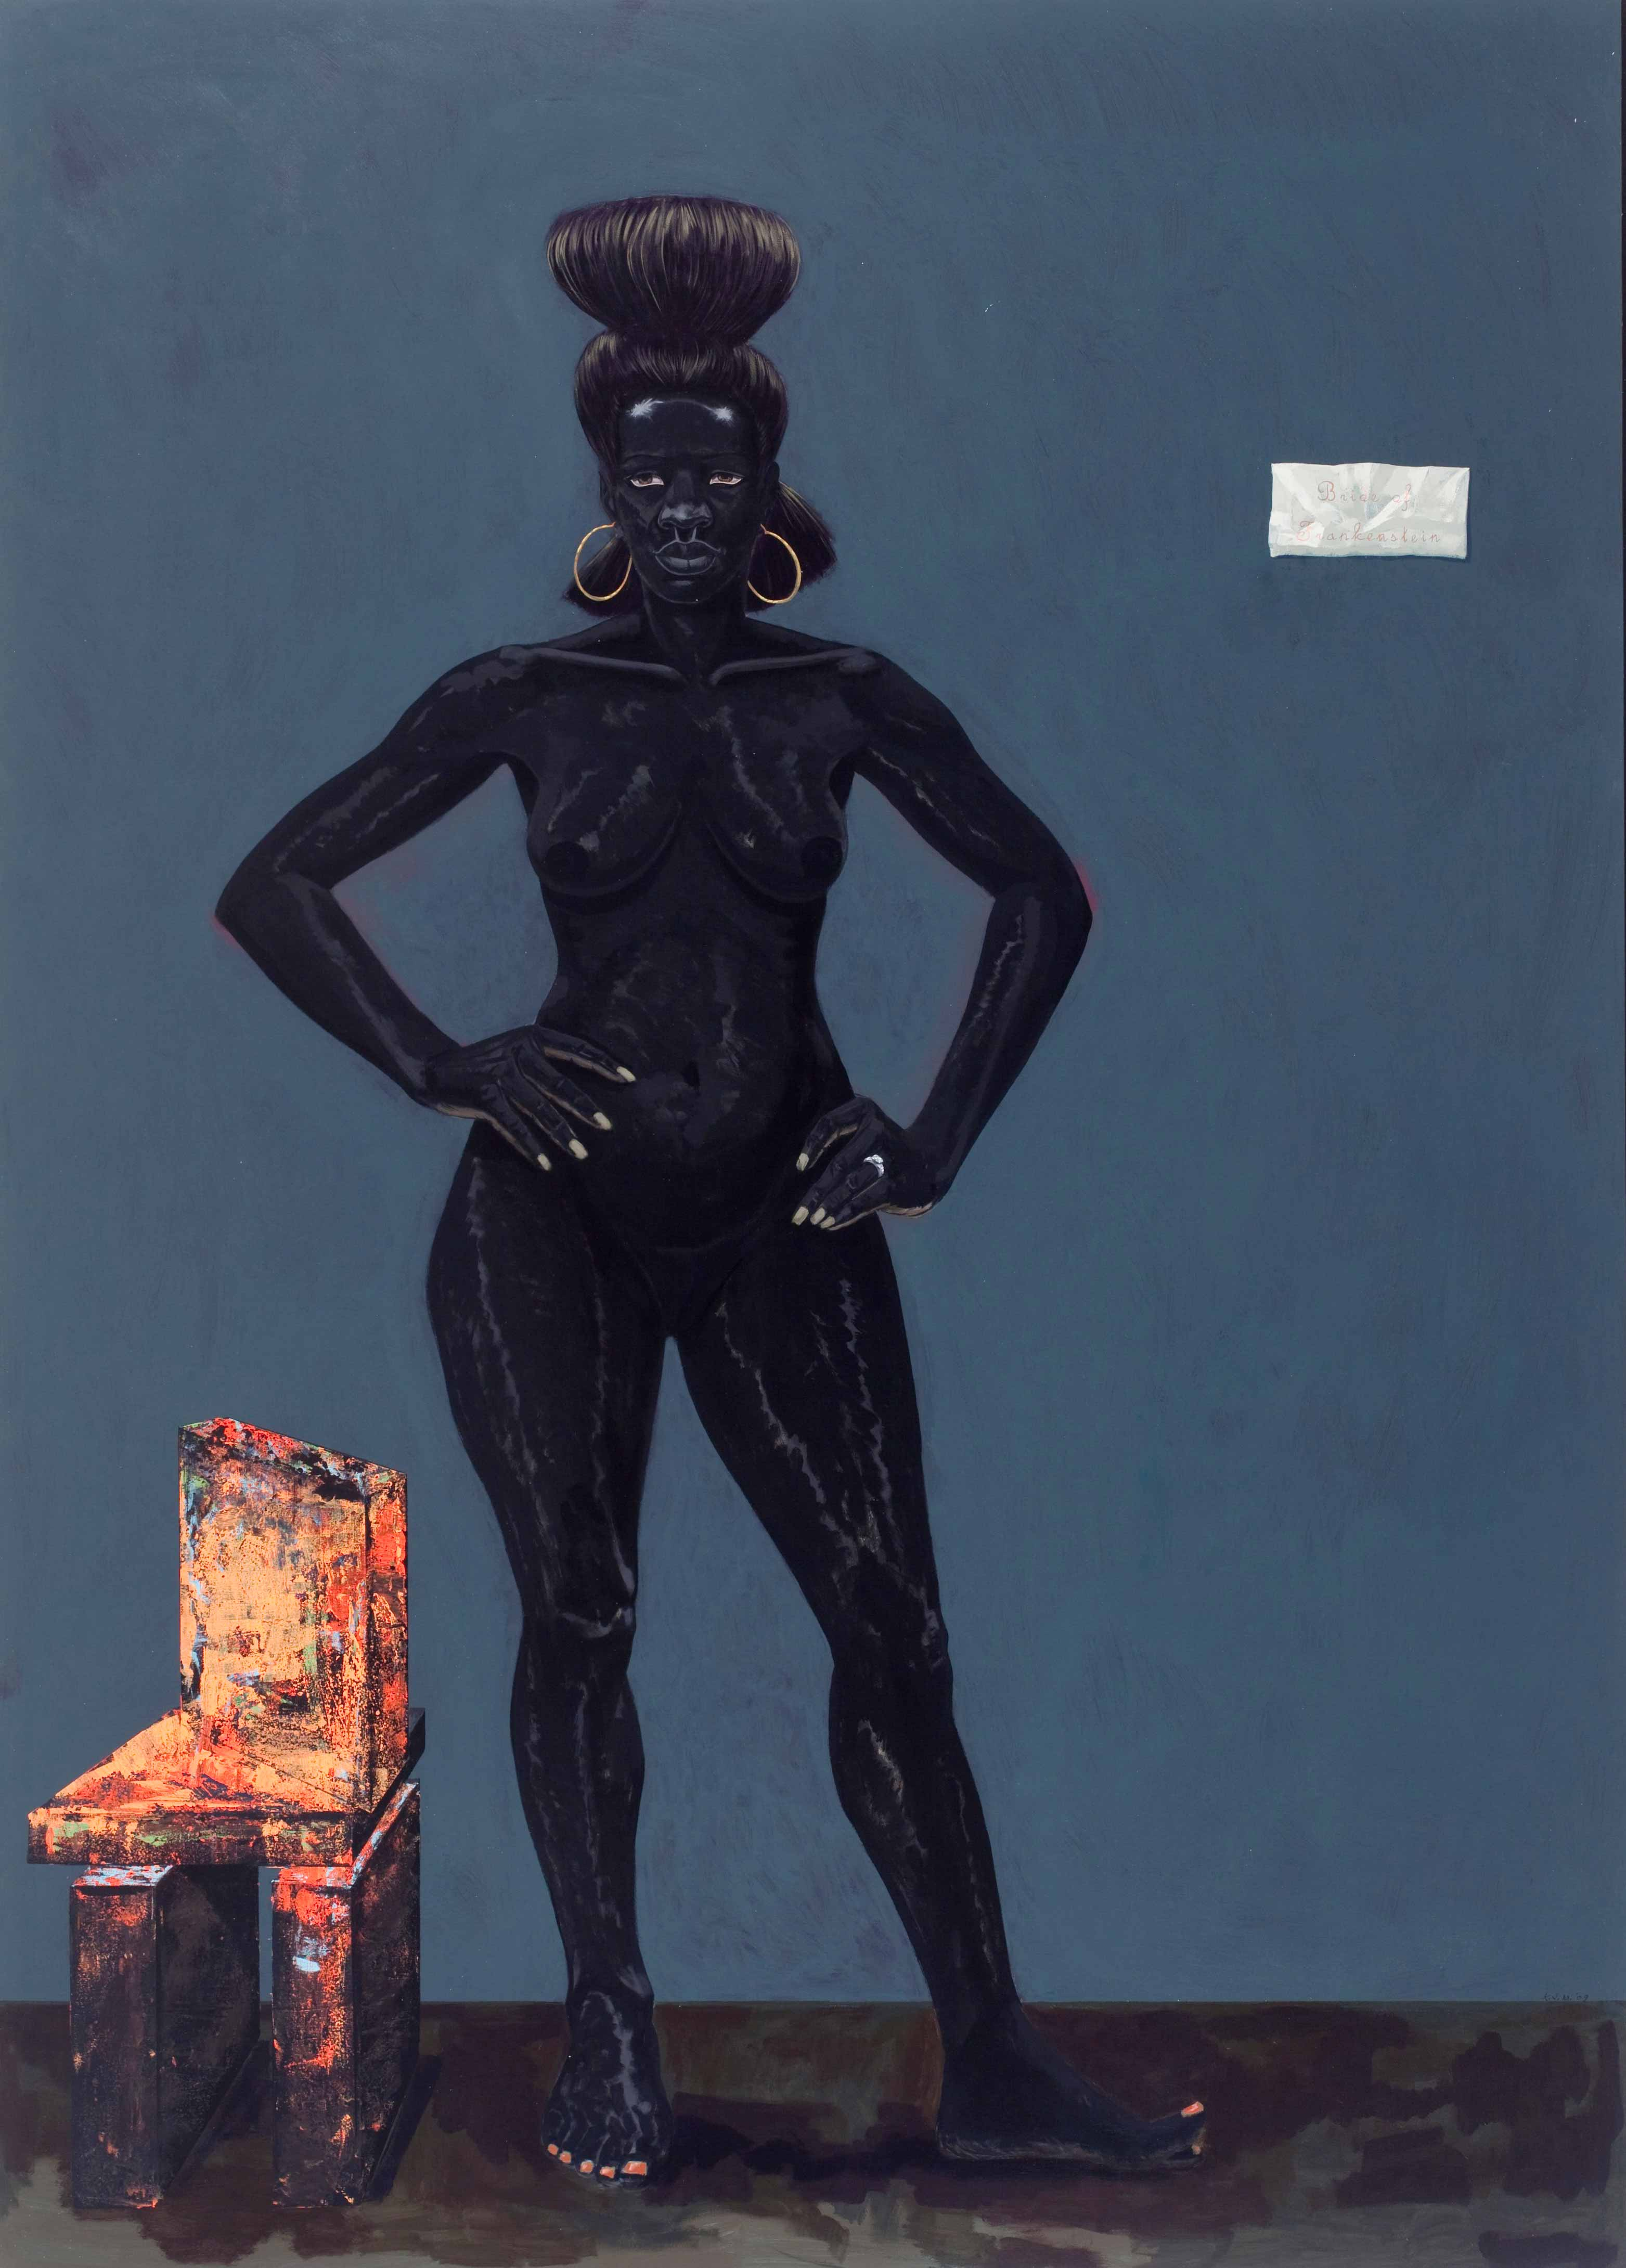 Kerry James Marshall, Bride of Frankenstein, 2009                        A monumental woman who stirs up notions of black sexuality and the anxieties it has sometimes aroused in white culture